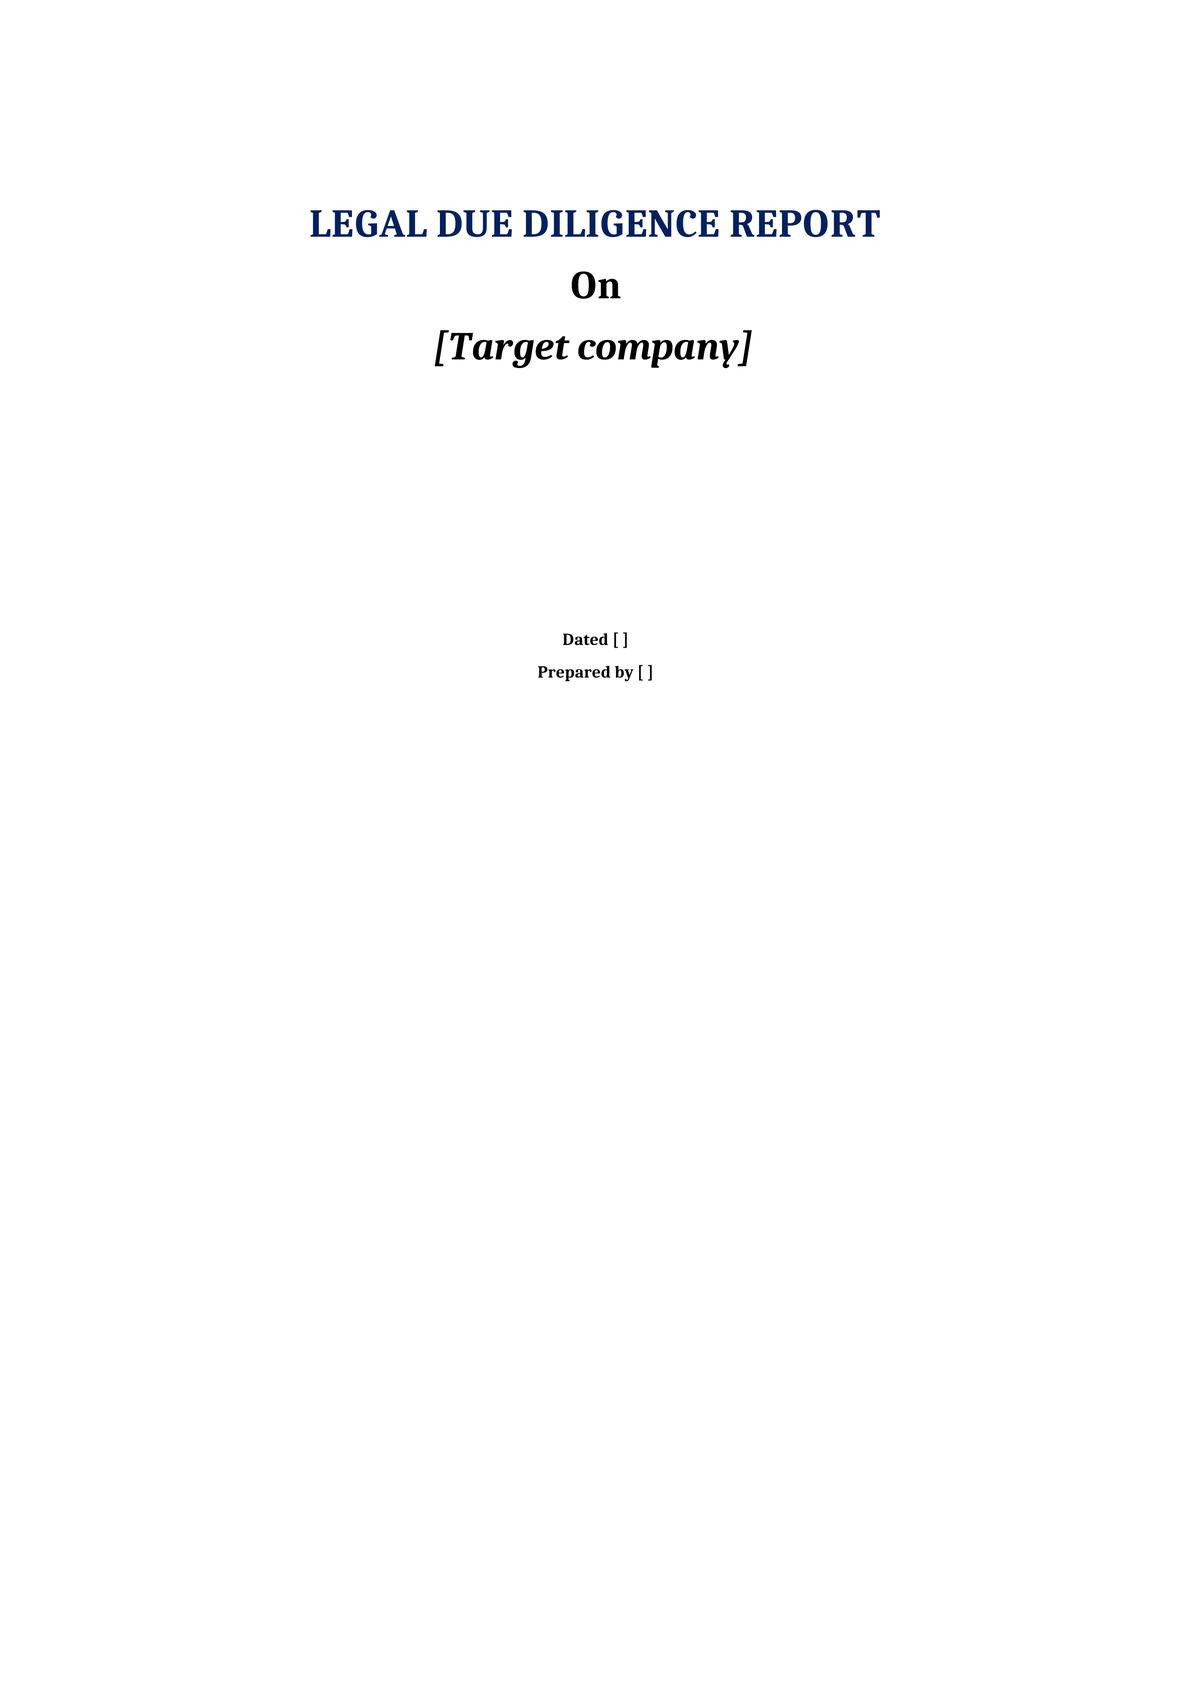 Legal Due Diligence (LDD) report template for M&A deals on a target company (in Vietnam)-0